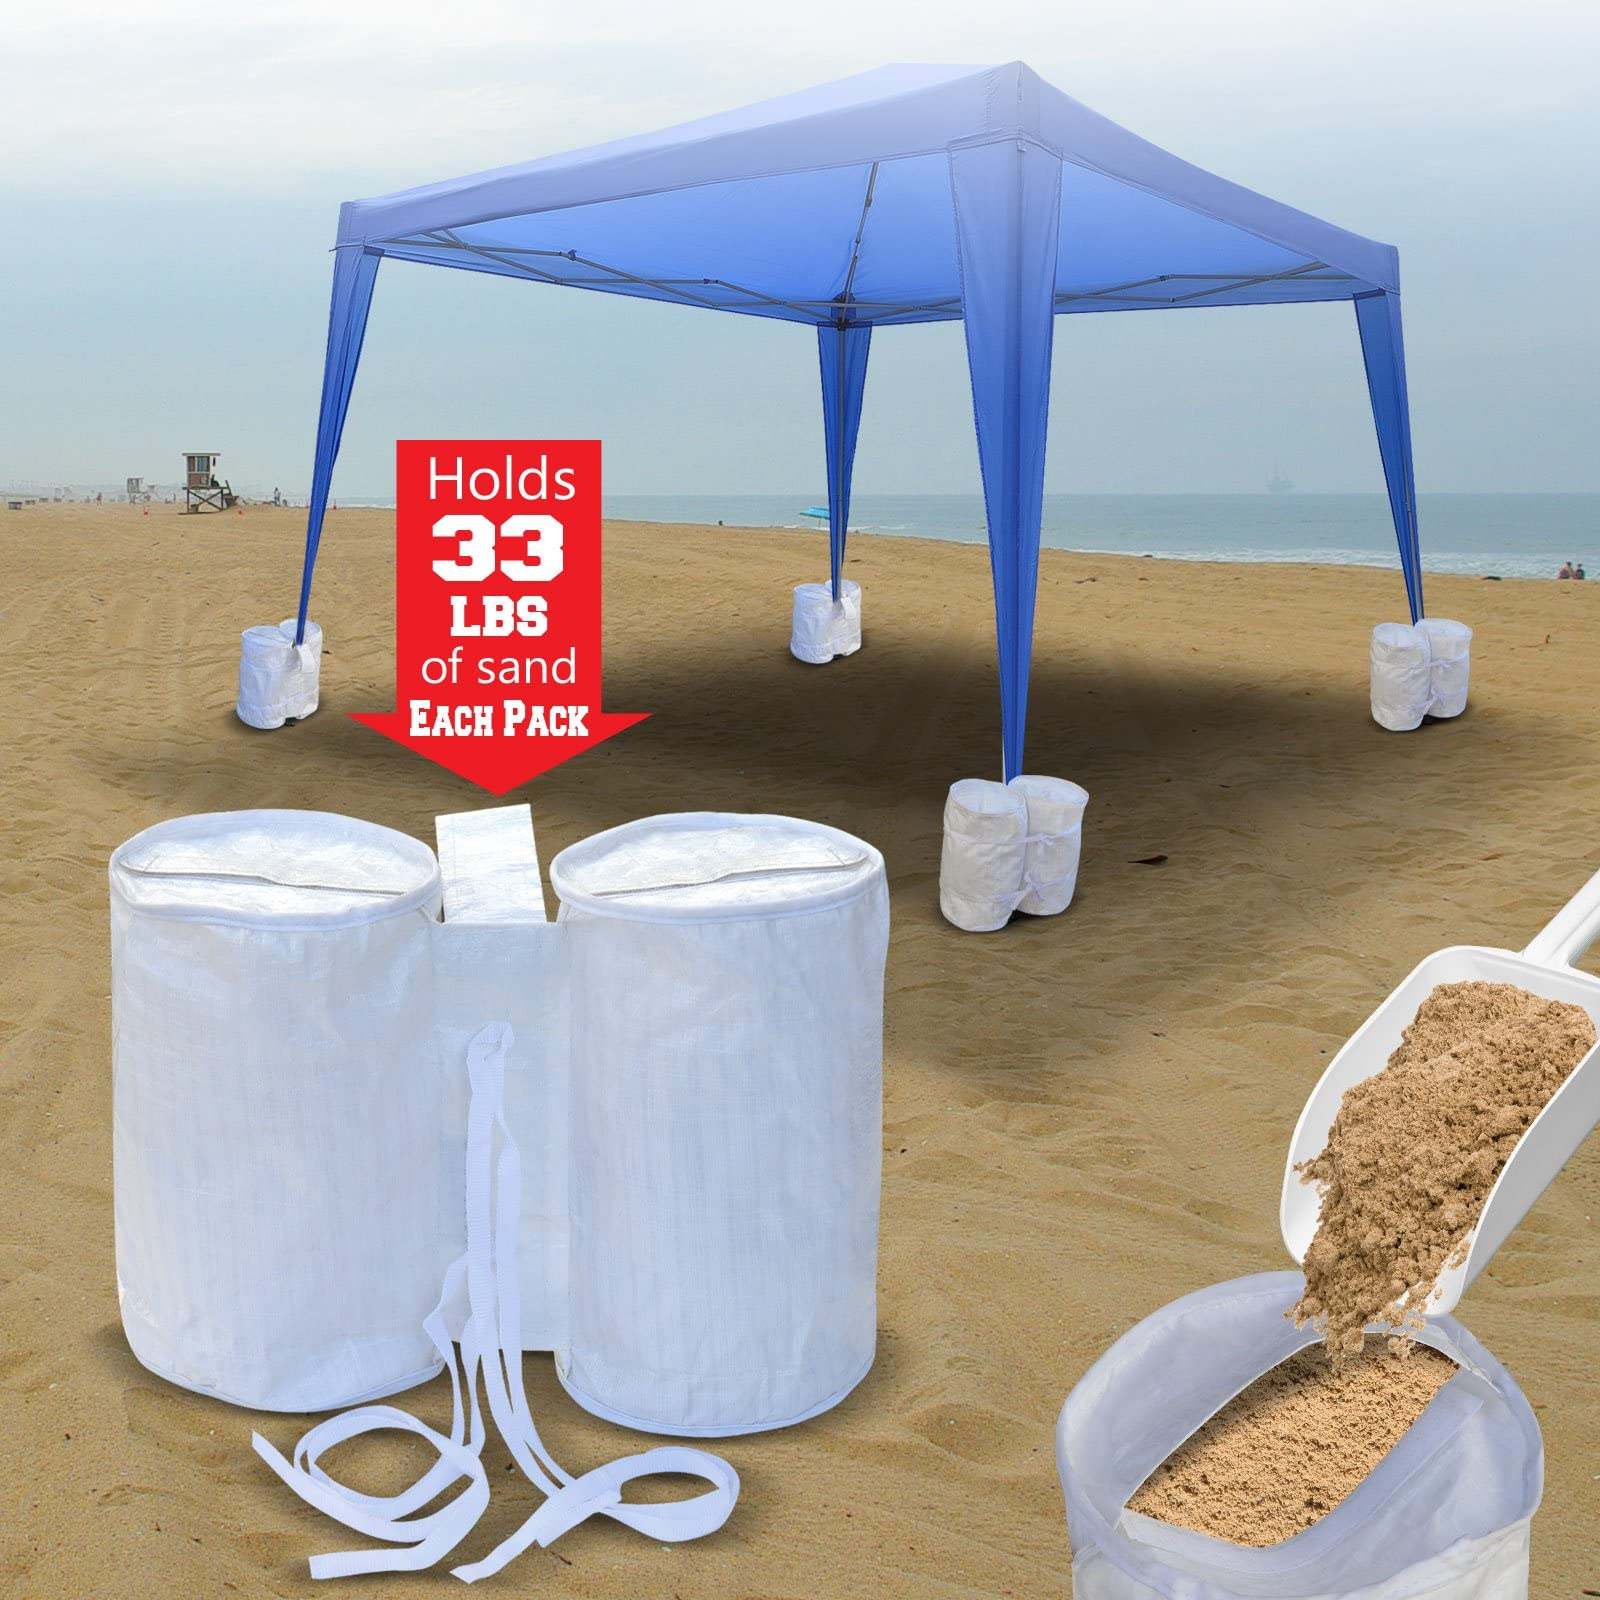 4 PCS outdoor CANOPY TENT WEIGHT SAND BAG ANCHOR KIT  sc 1 st  Amazon.com & Amazon.com: Canopies - Canopies Gazebos u0026 Pergolas: Patio Lawn ...